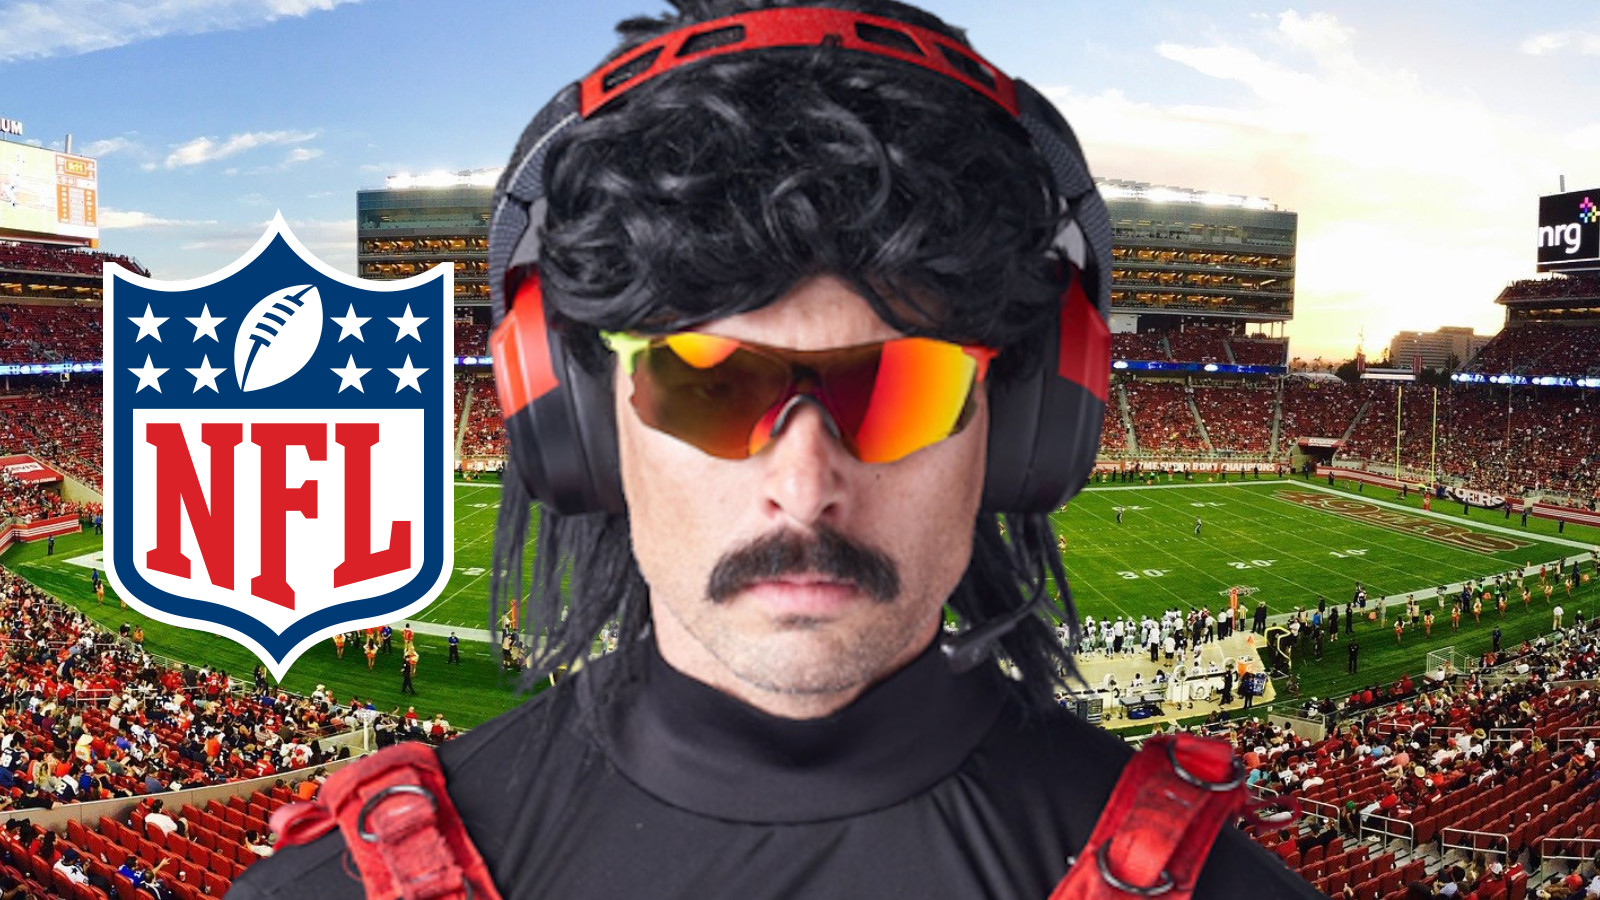 Dr Disrespect announces nfl charity stream